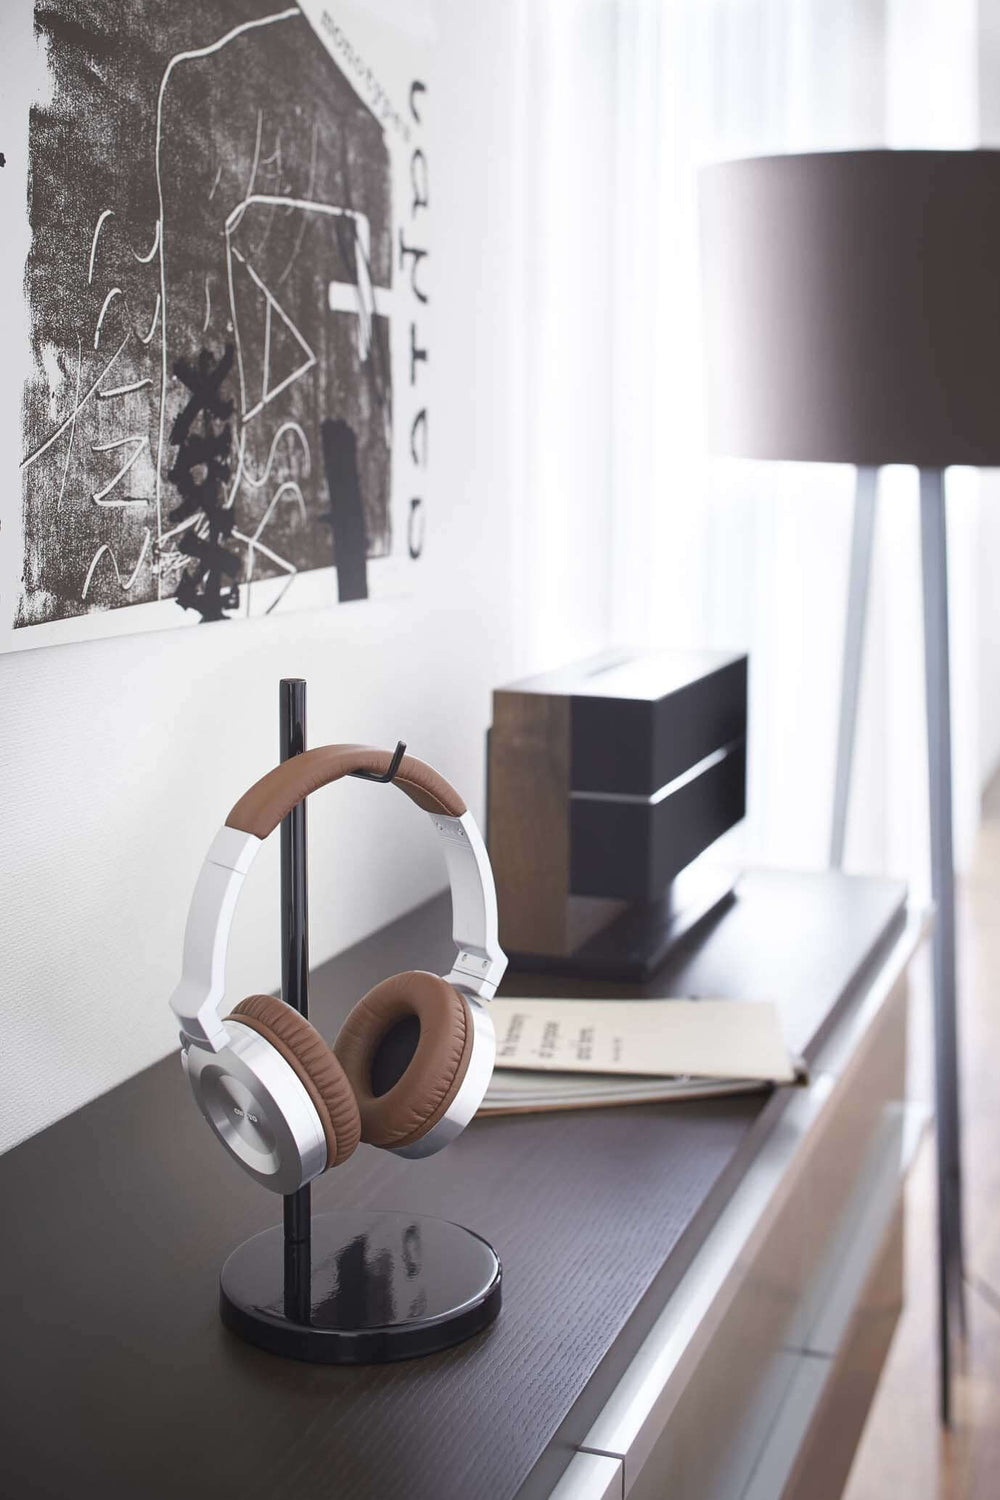 Yamazaki headphone stand holding headphones on a dresser